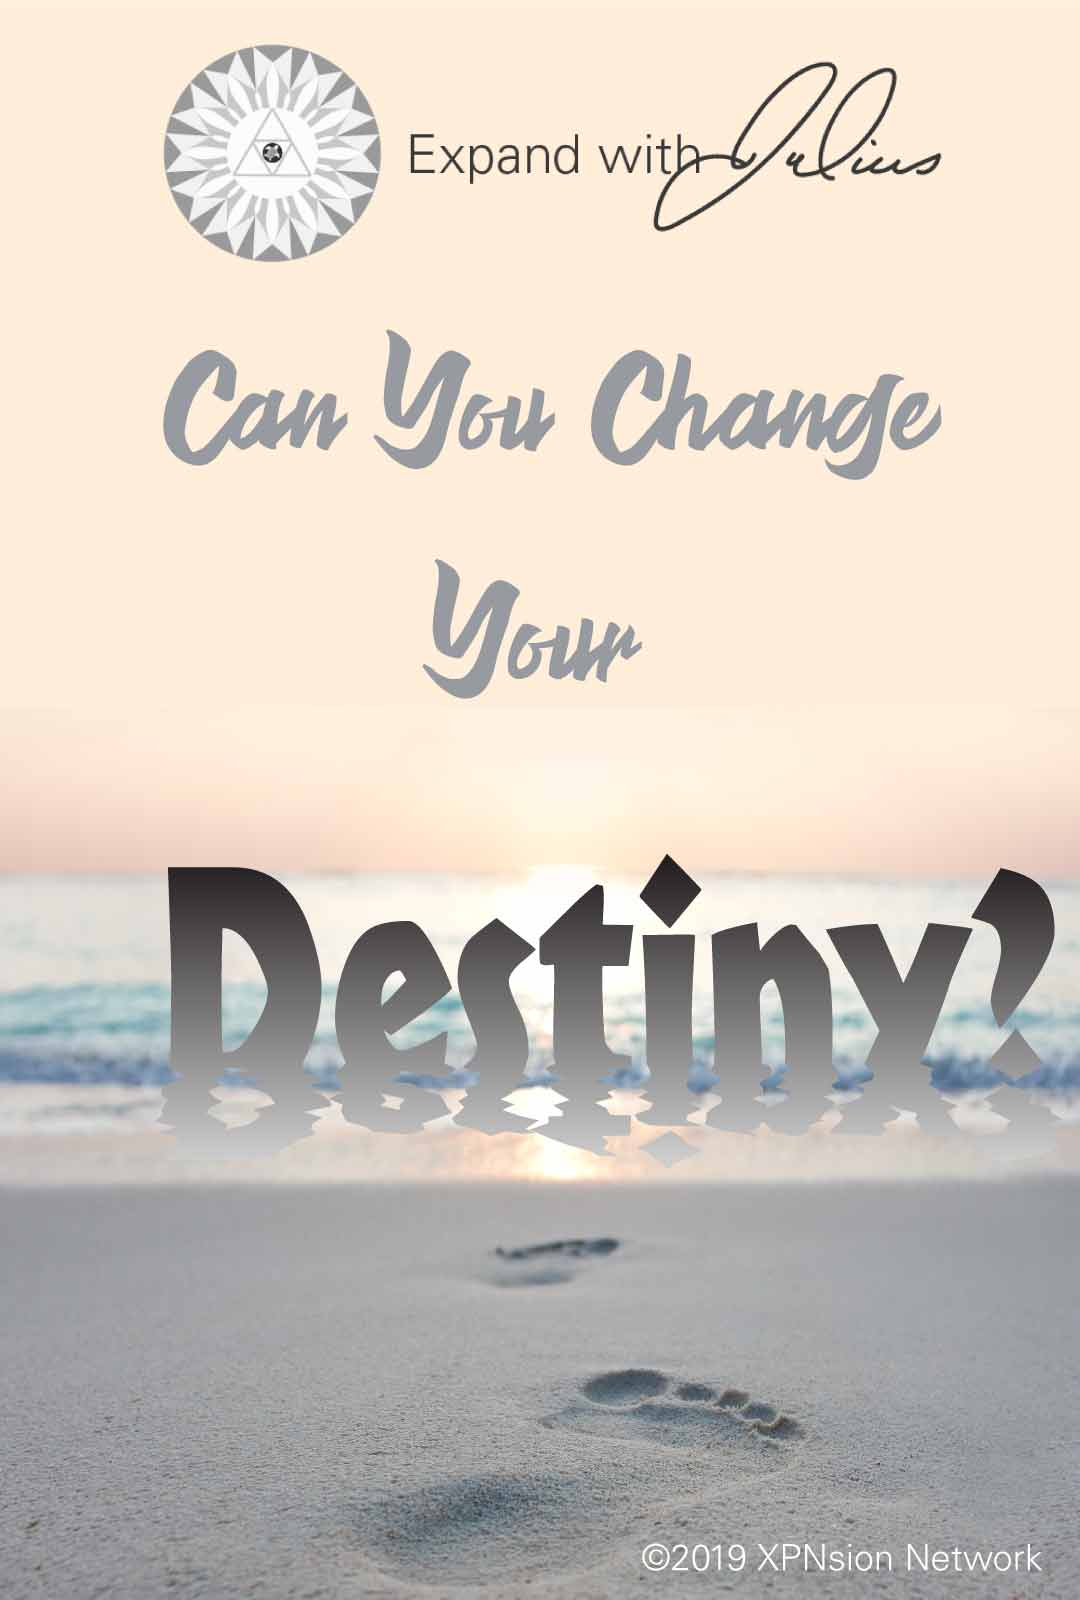 Poster Can you change your destiny   Expand with Julius and Xpnsion Network